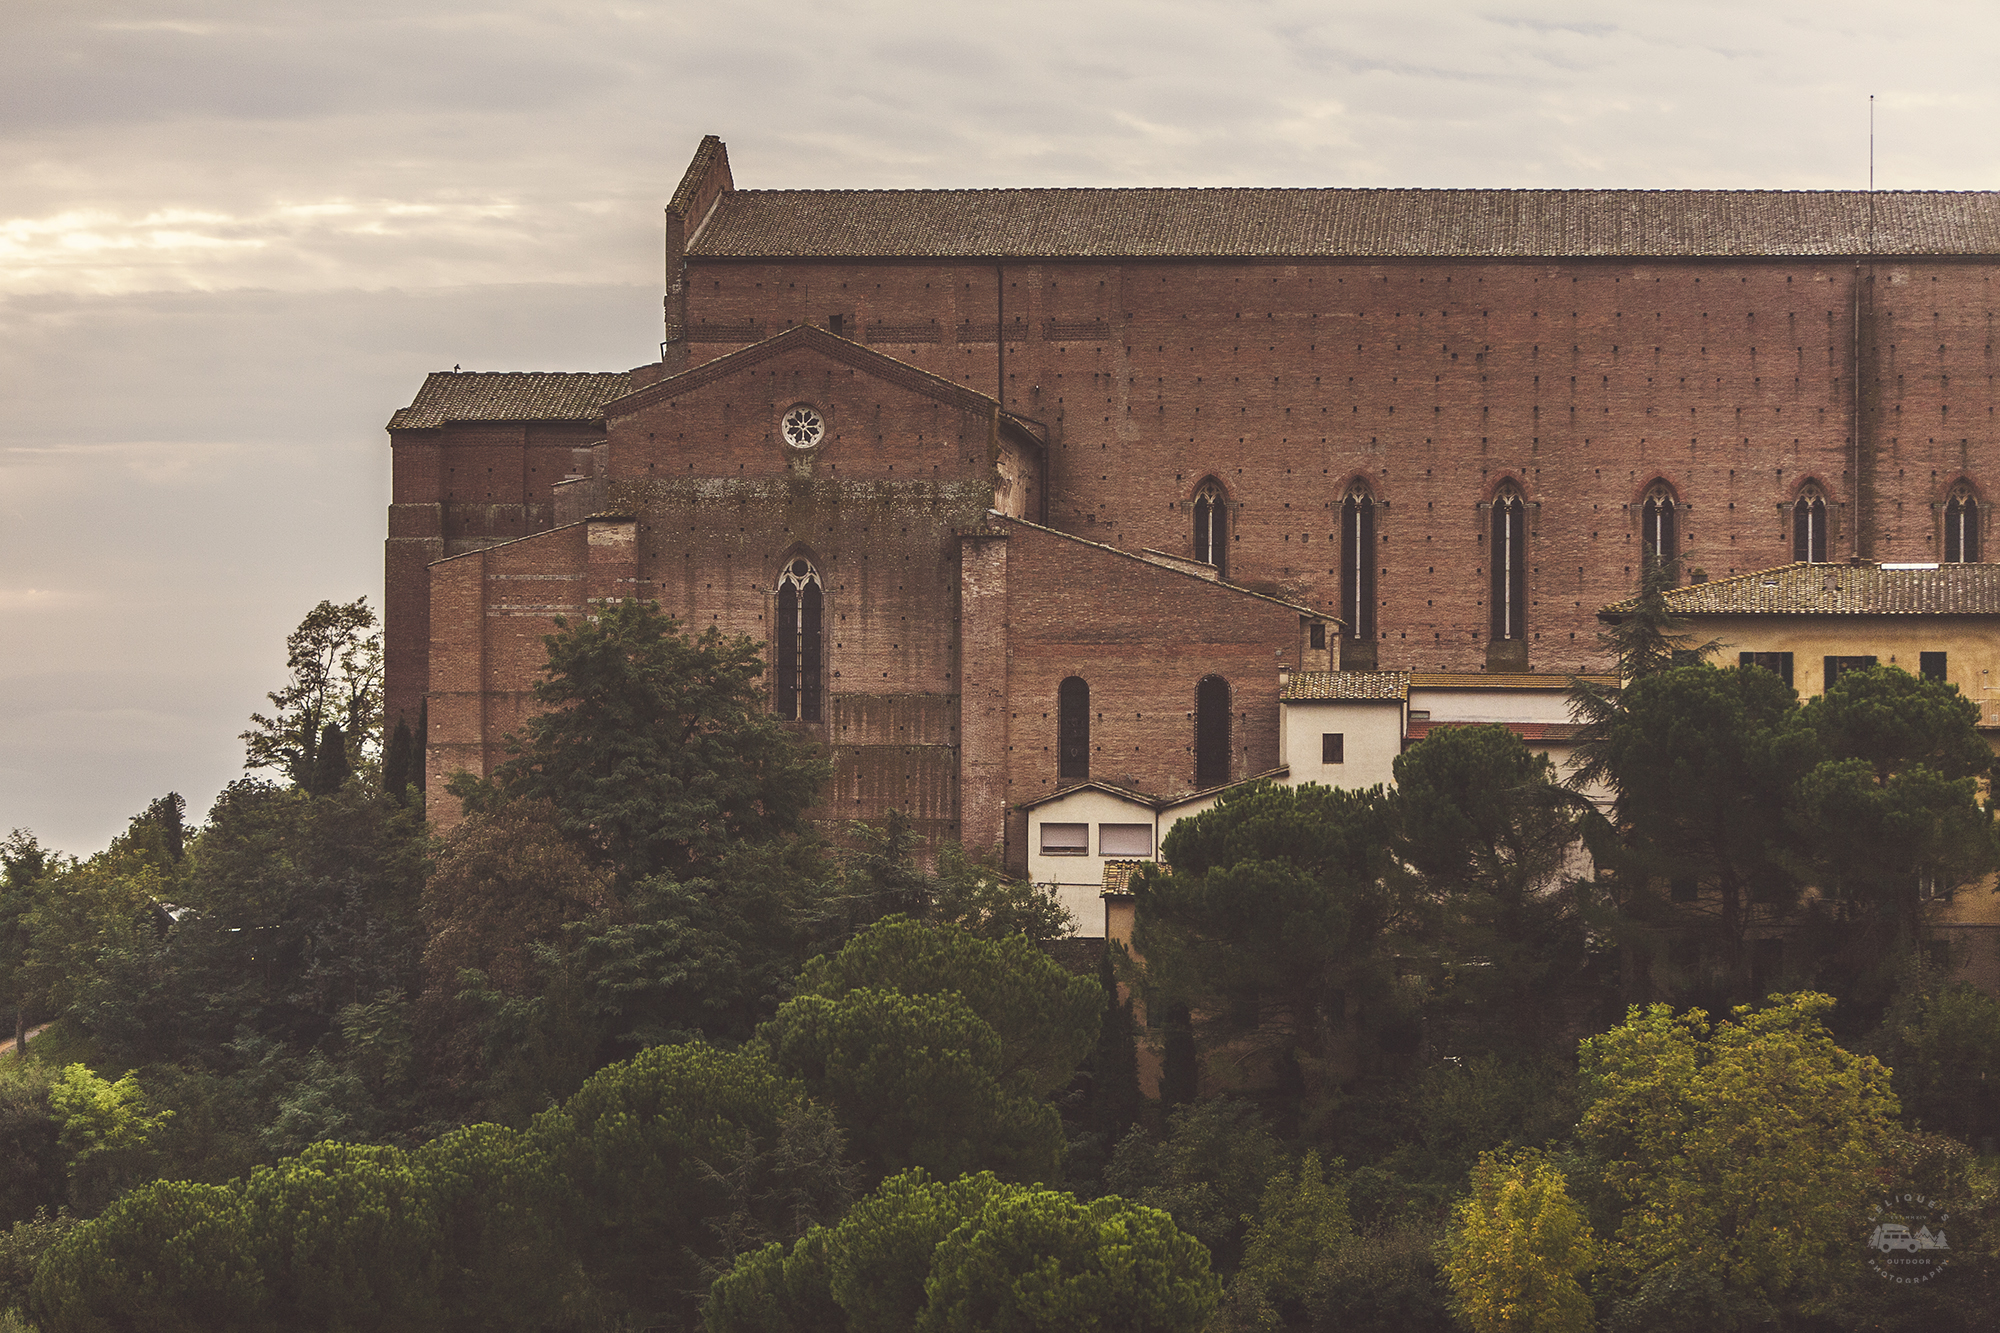 Basilica of San Domenico [Photo Credits: Alexey - Lelique - Zinovev]